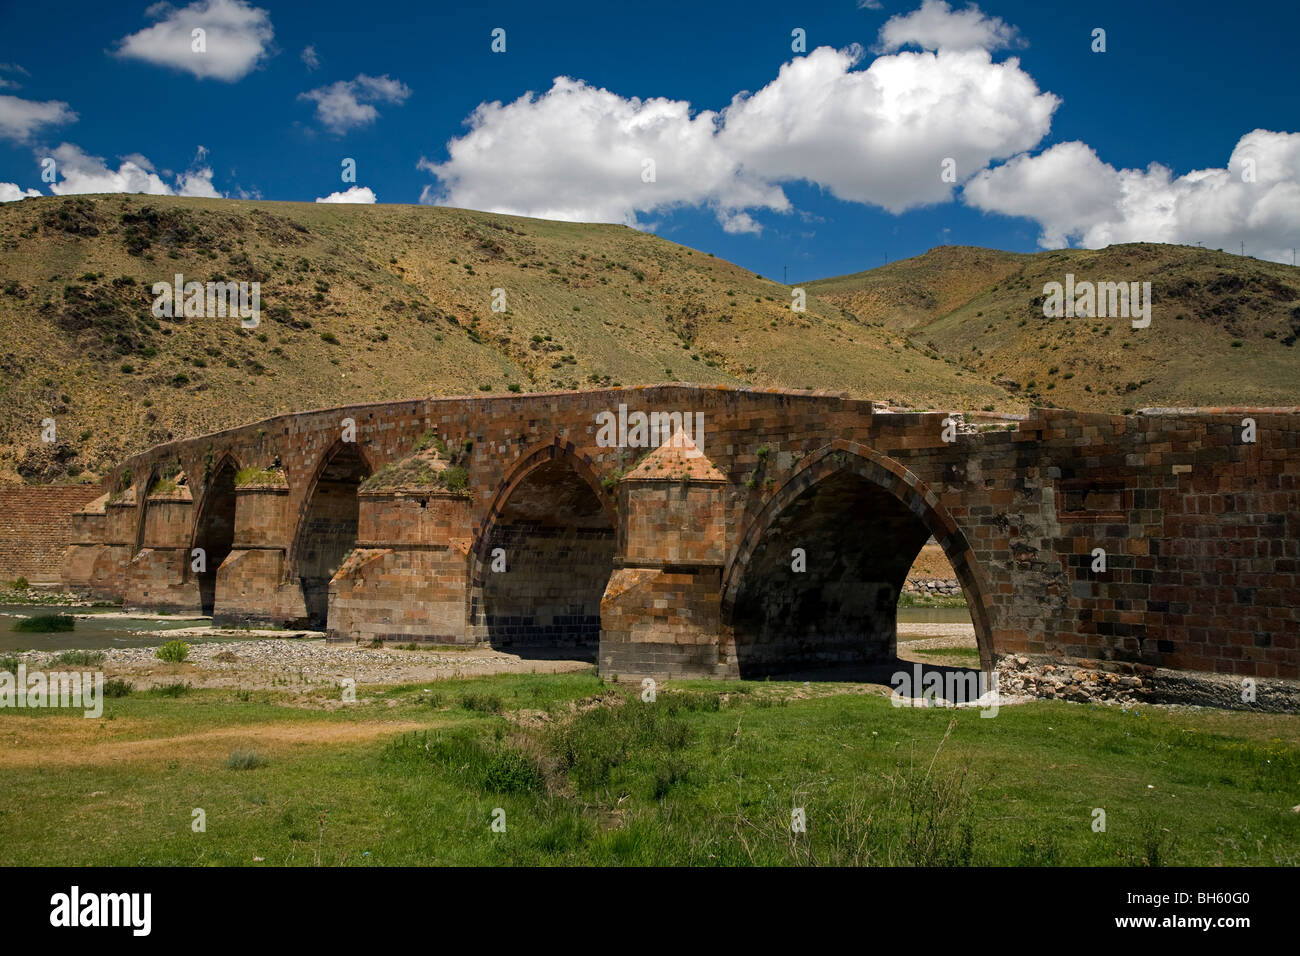 Historical Cobandere Bridge built in 1298 on Aras River, Kars Turkey. - Stock Image